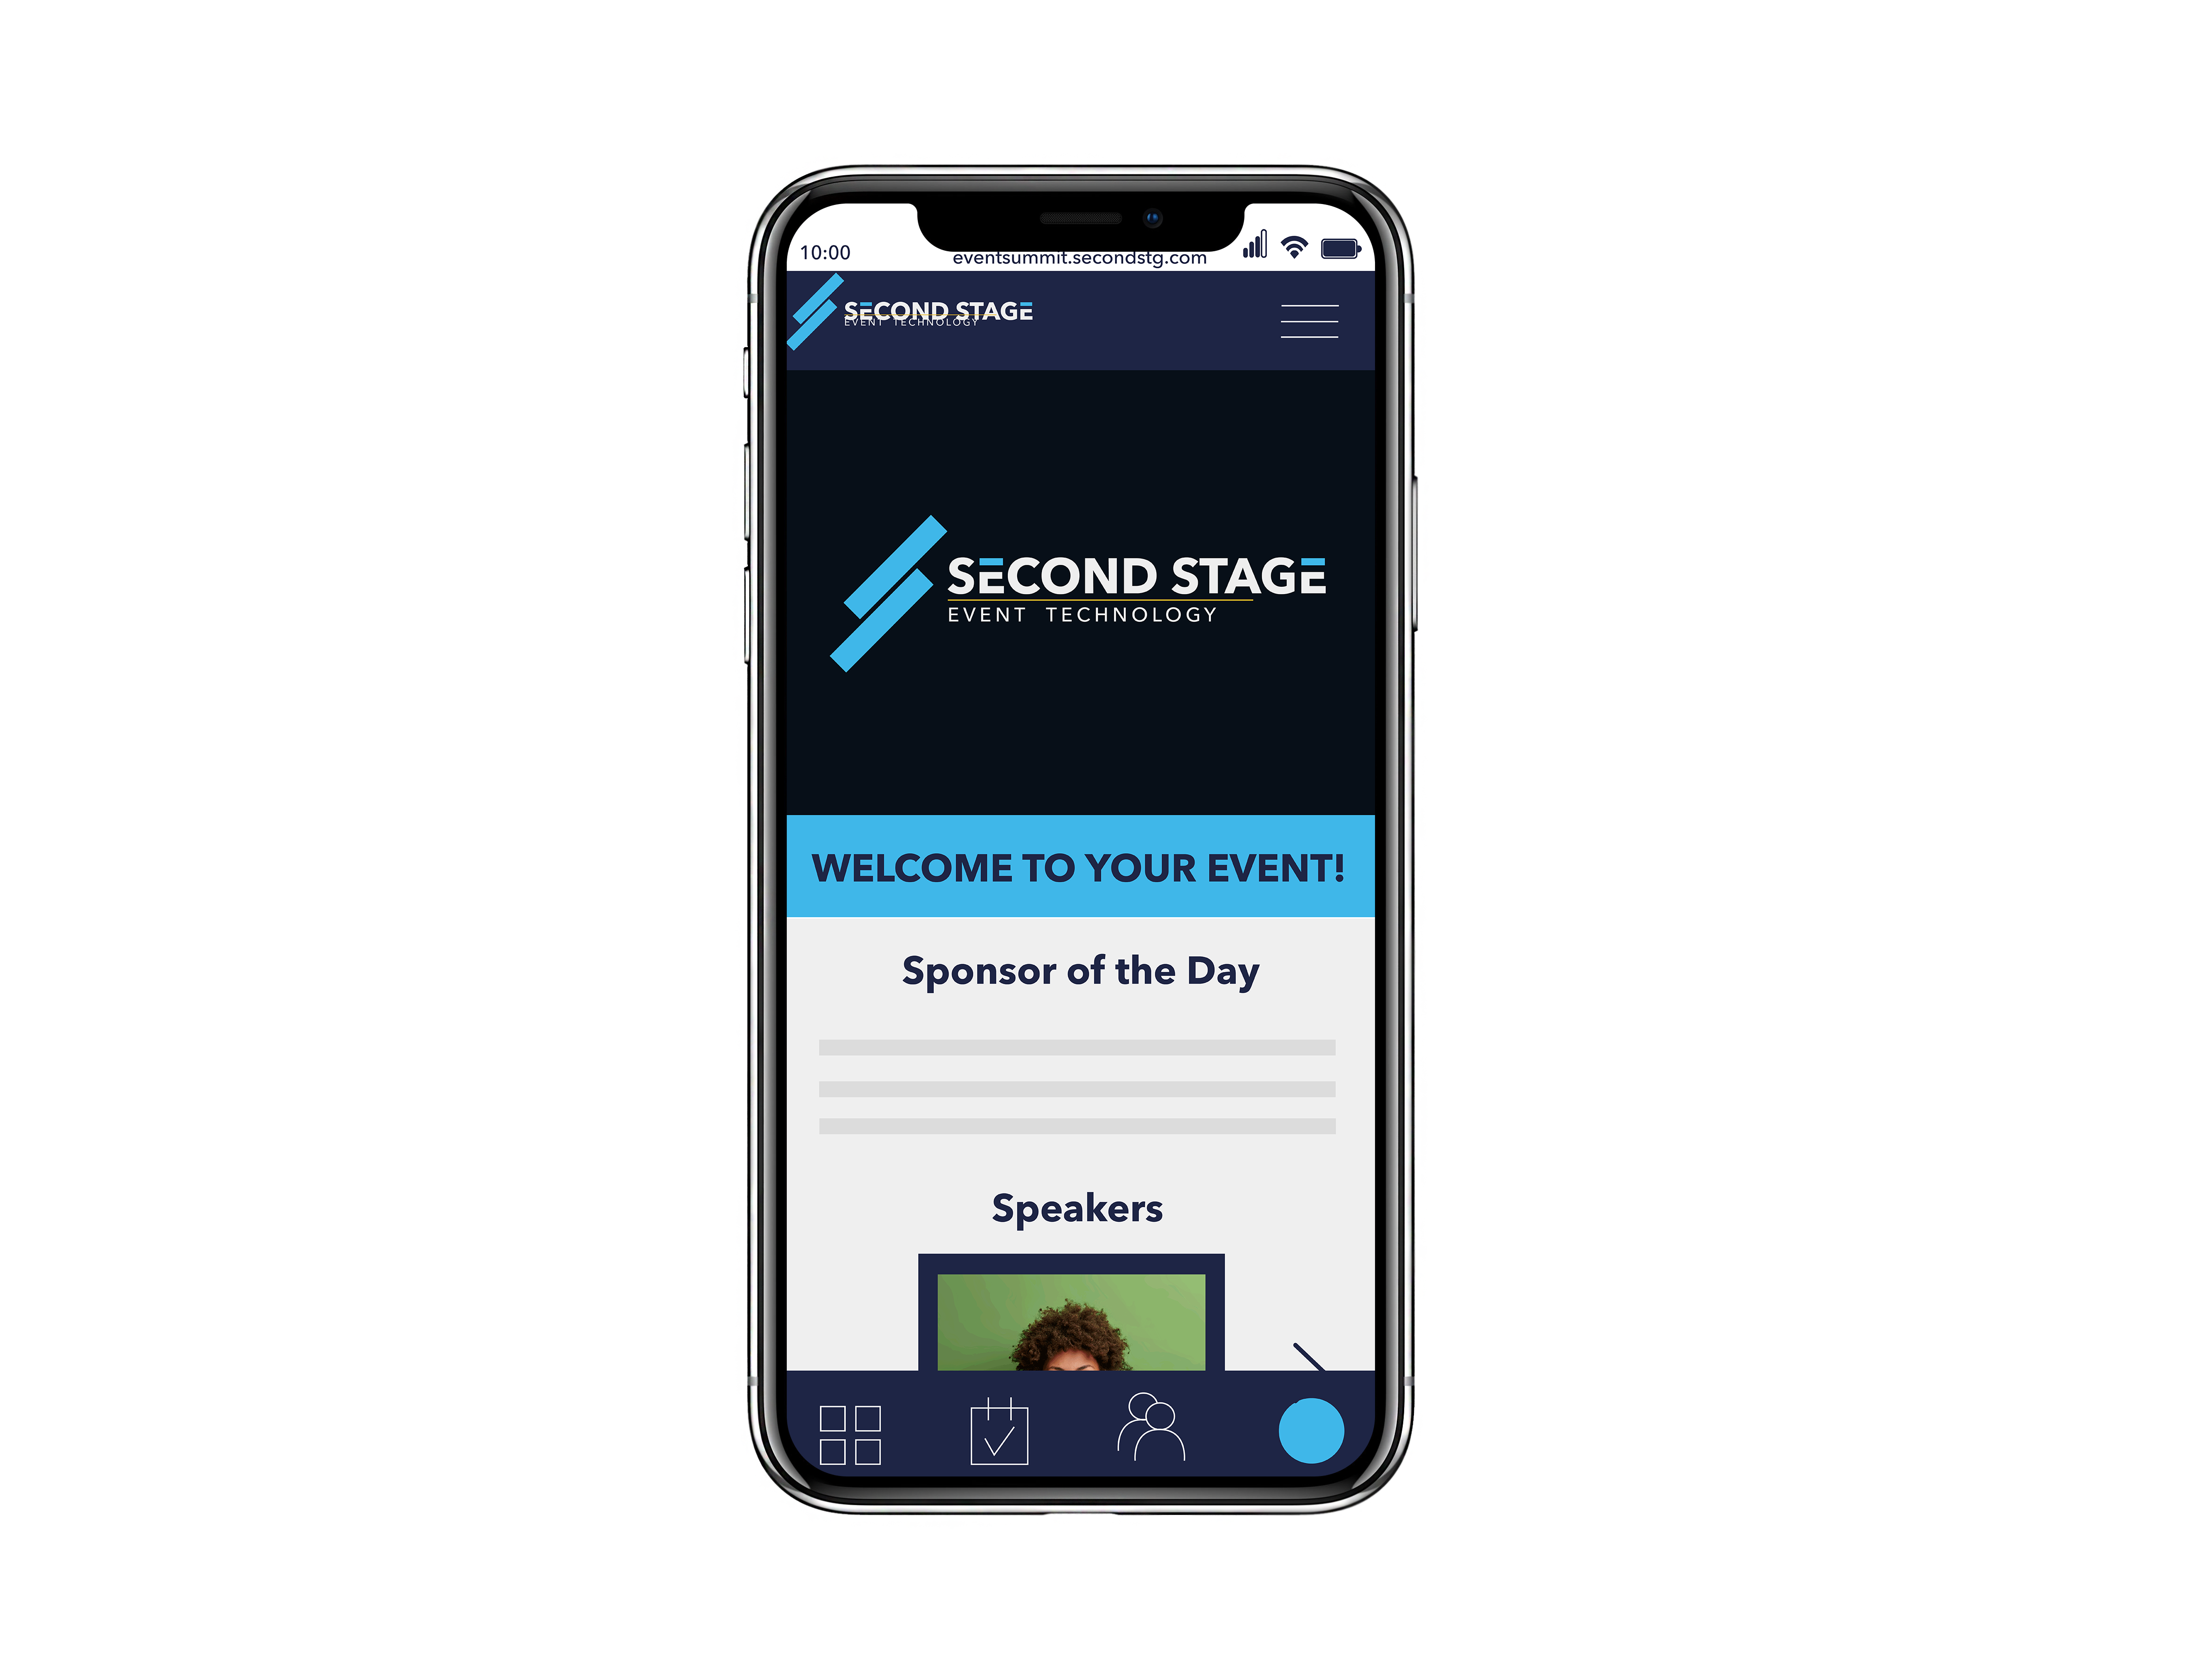 Mobile-friendly Second Stage